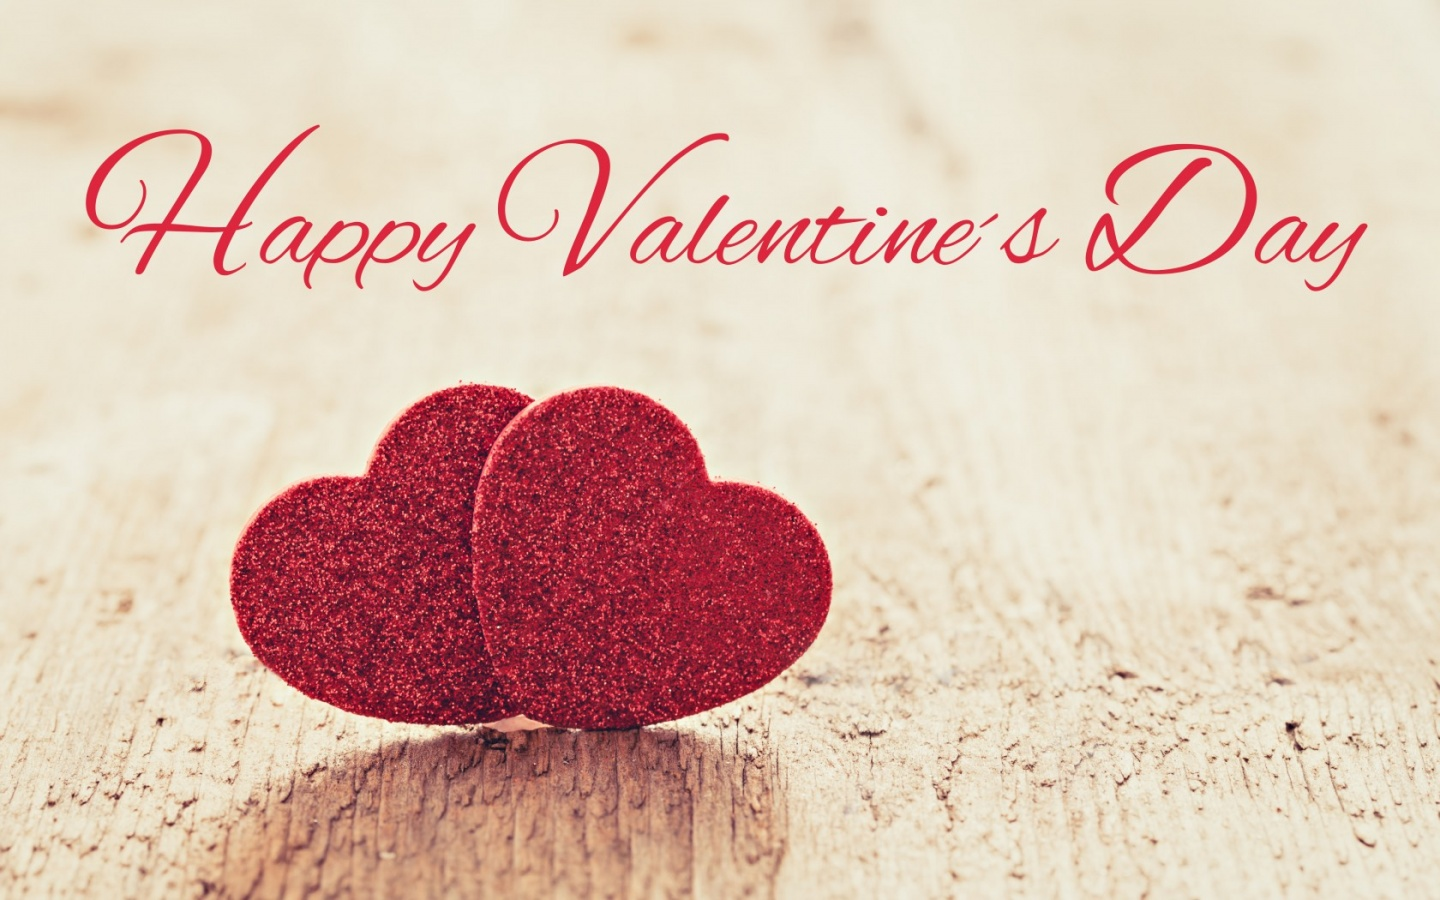 I Love Valentines Day Wallpapers 1440x900 357438